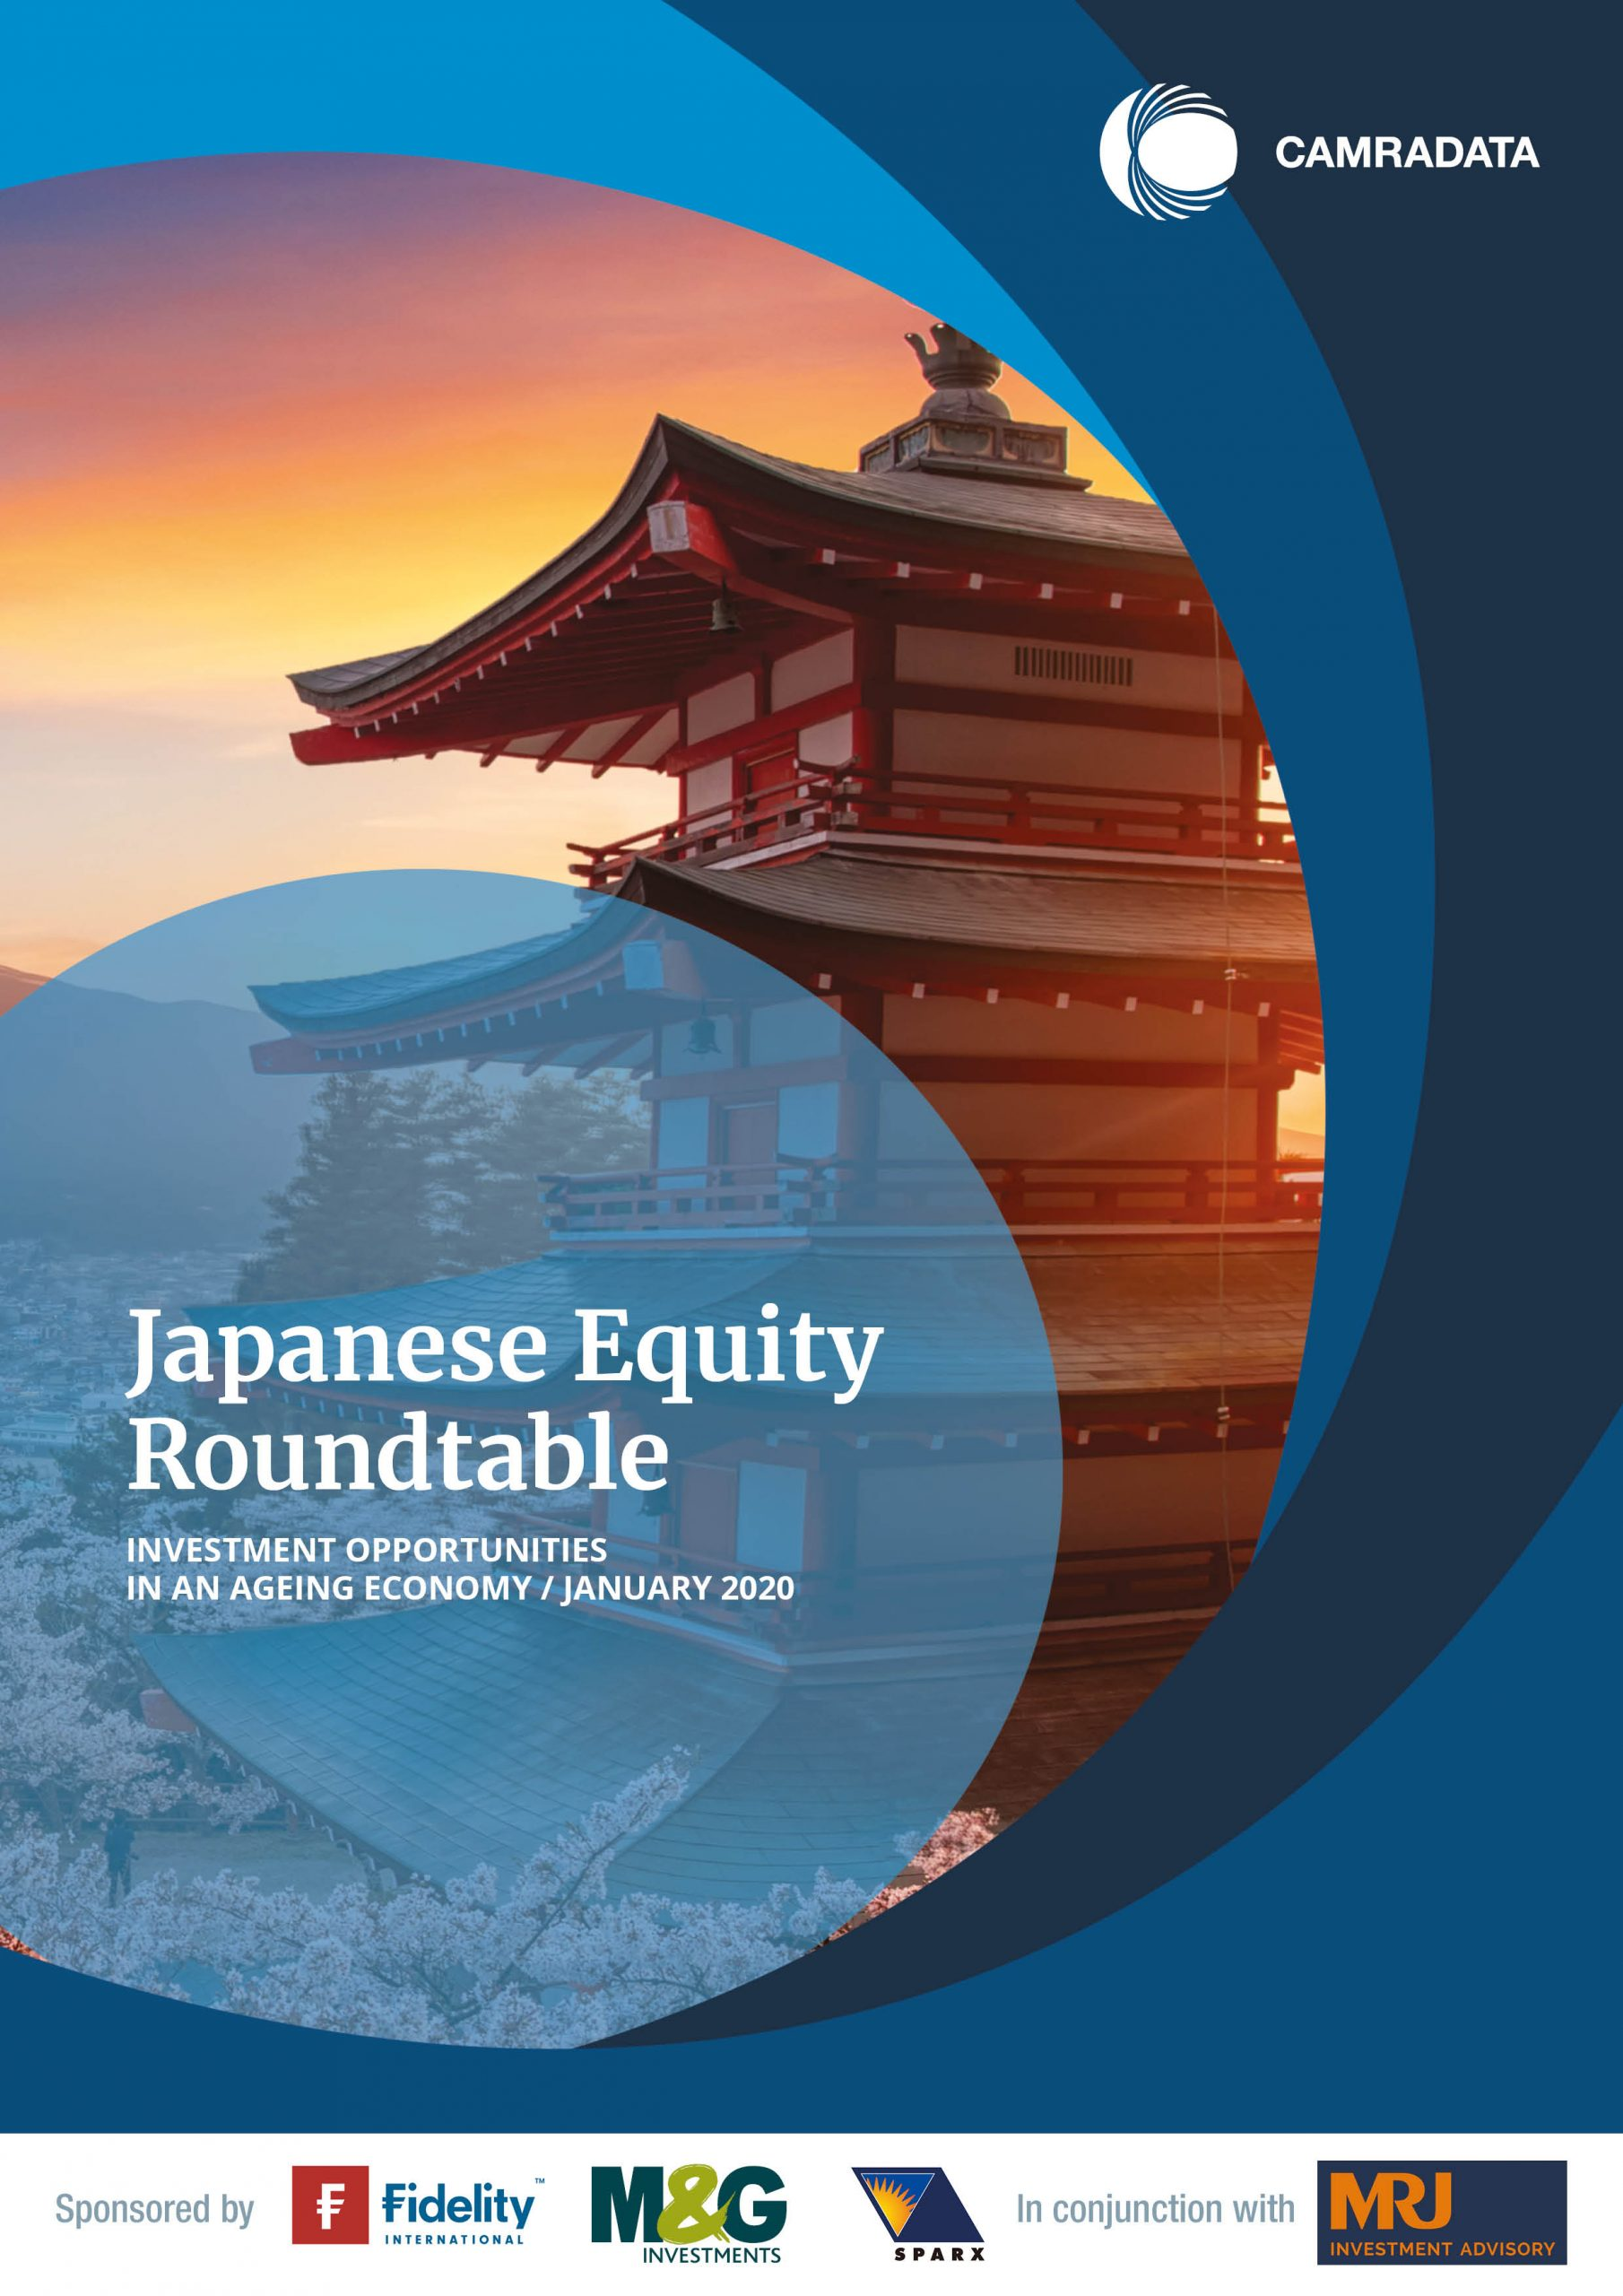 Japanese Equity